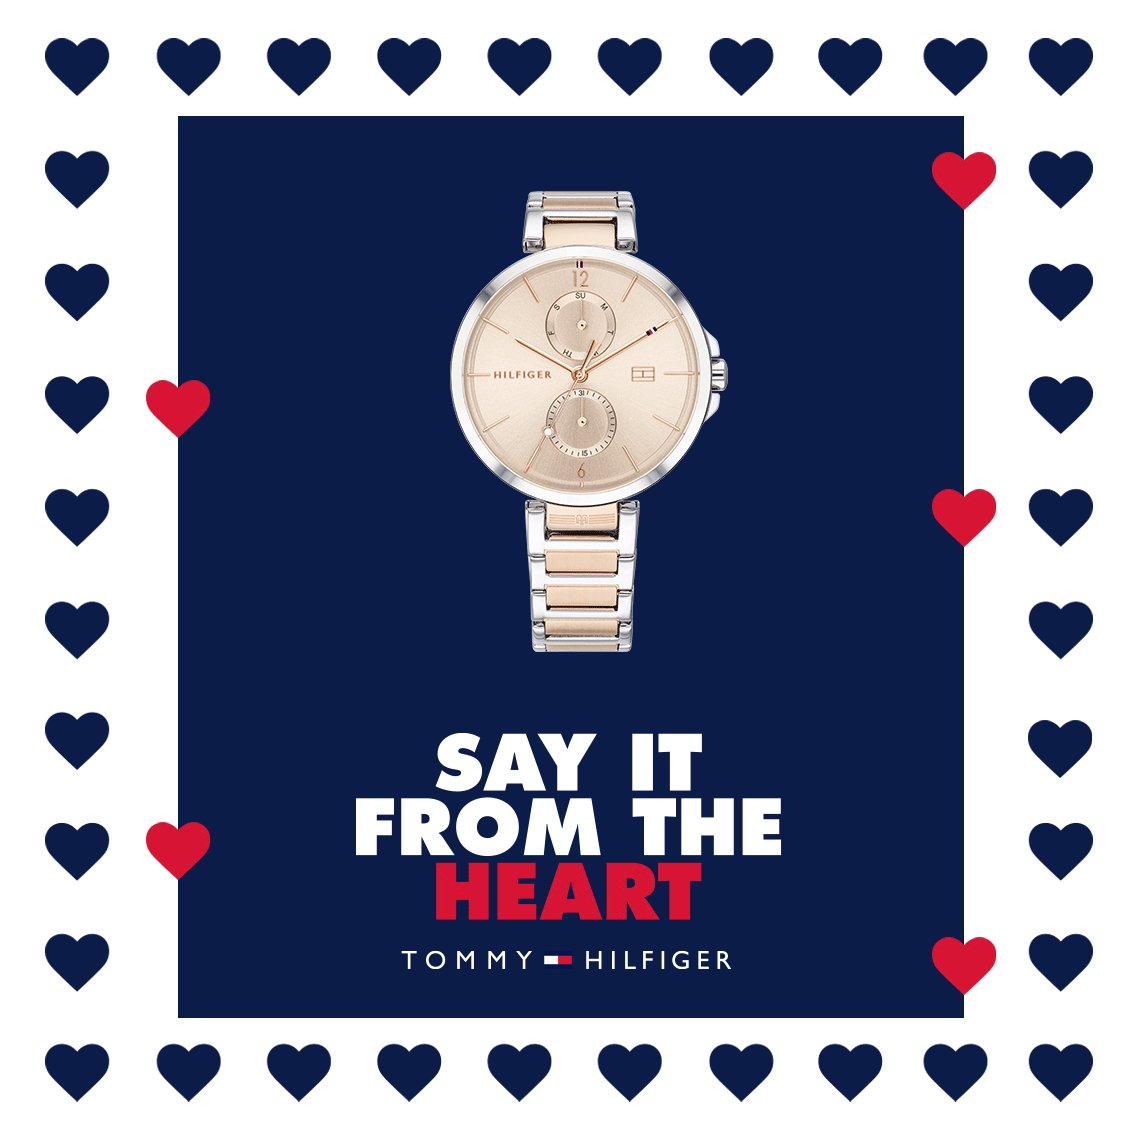 Say it from the heart this Valentine's Day with a Tommy Hilfiger watch 💕⌚️ http://bit.ly/Tommy-Hilfiger-1782127 … #TommyHilfigerWatches #ValentinesDayGifts